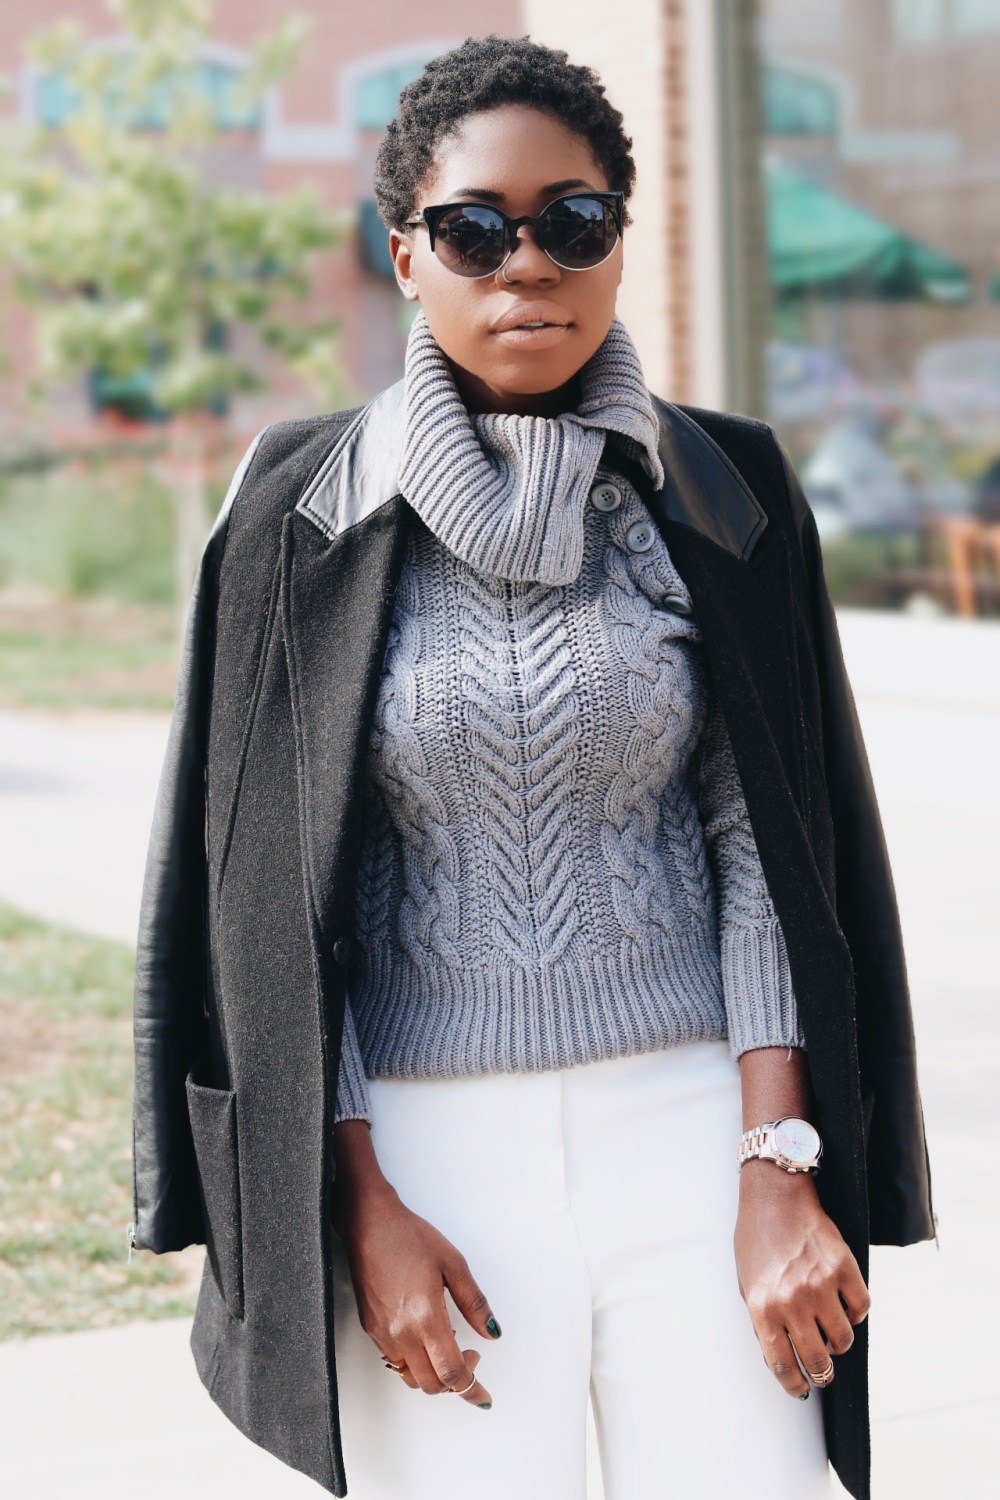 style-synopsis-contrast-black-coat